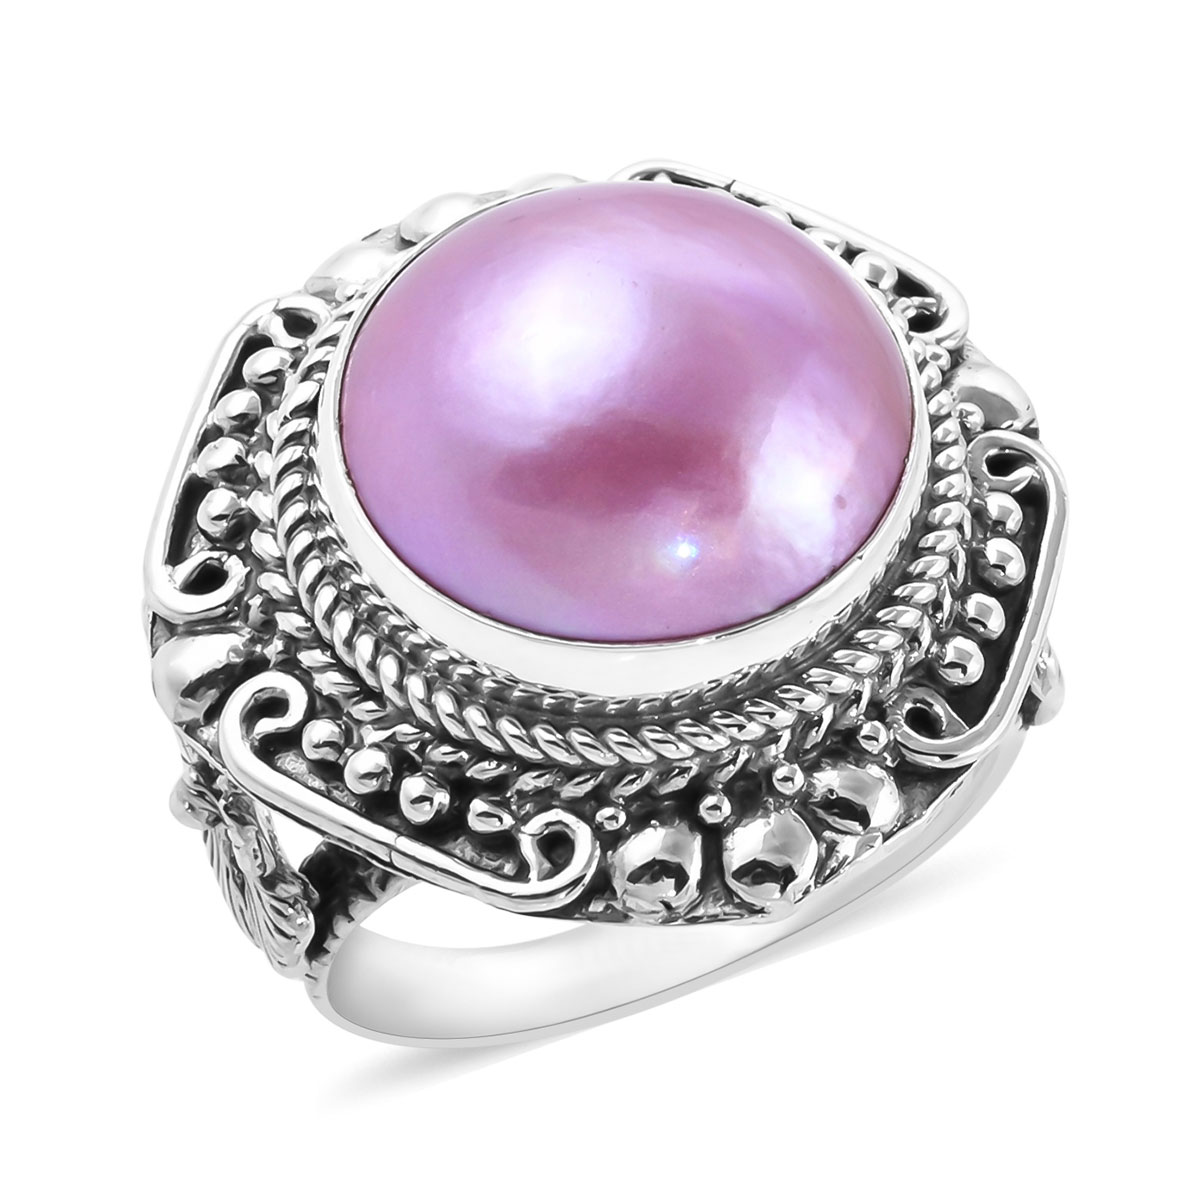 Artisan Crafted STERLING SILVER 925 Pink Cultured Mabe Pearl Ring Size 8